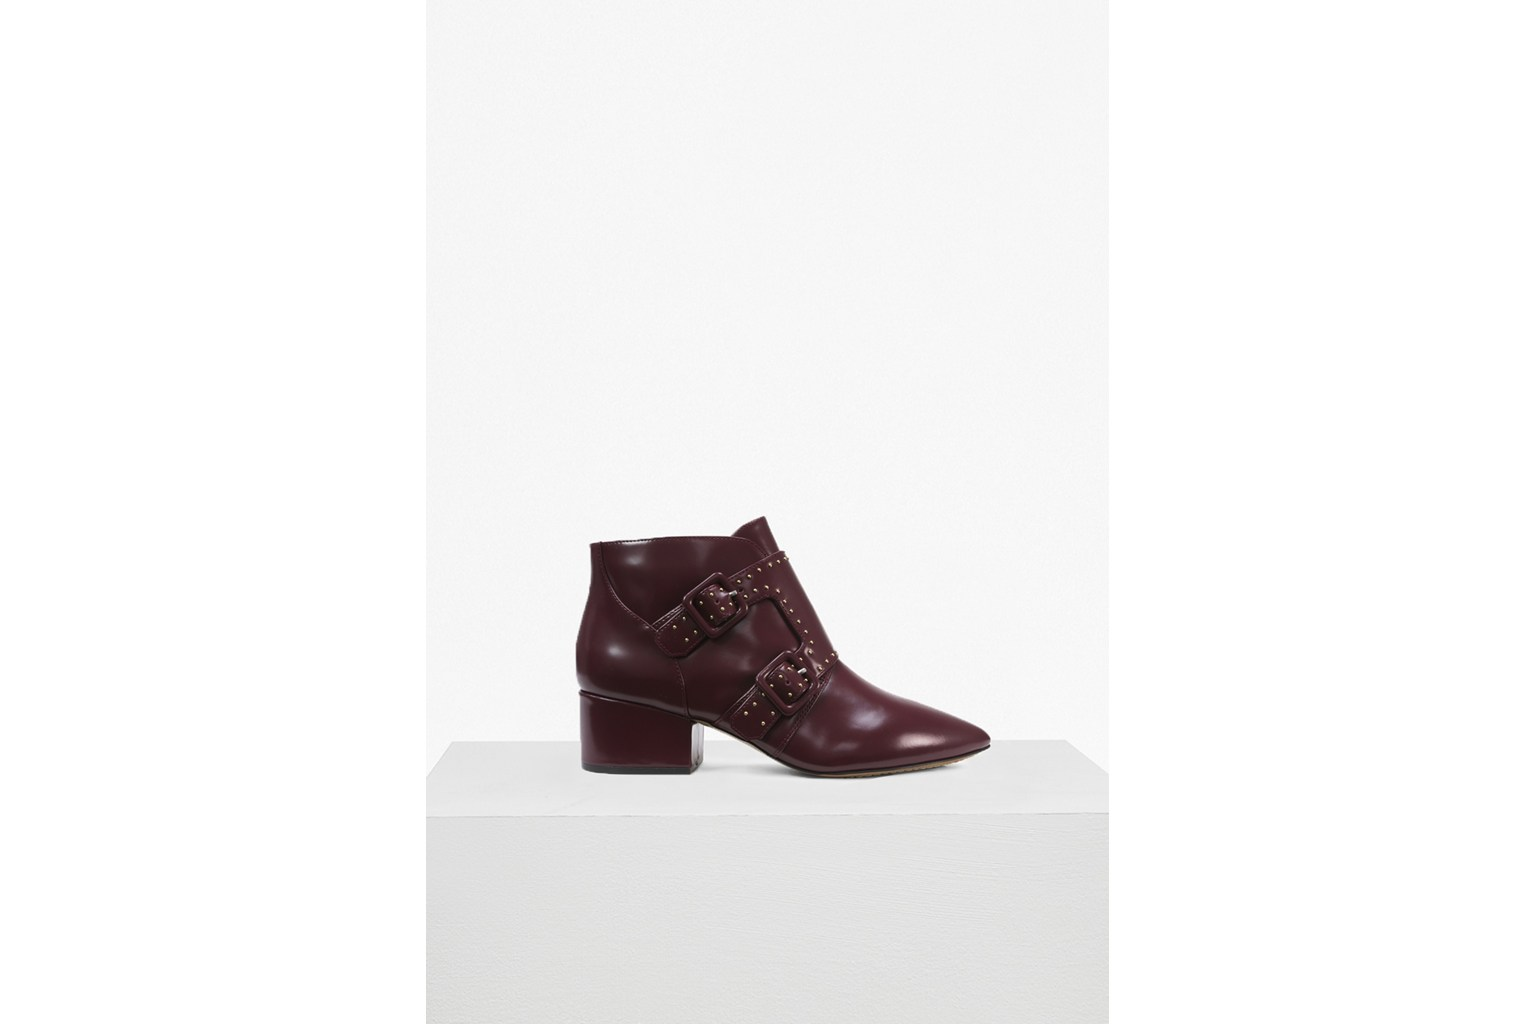 Roree Double Buckle Stud Leather Boots